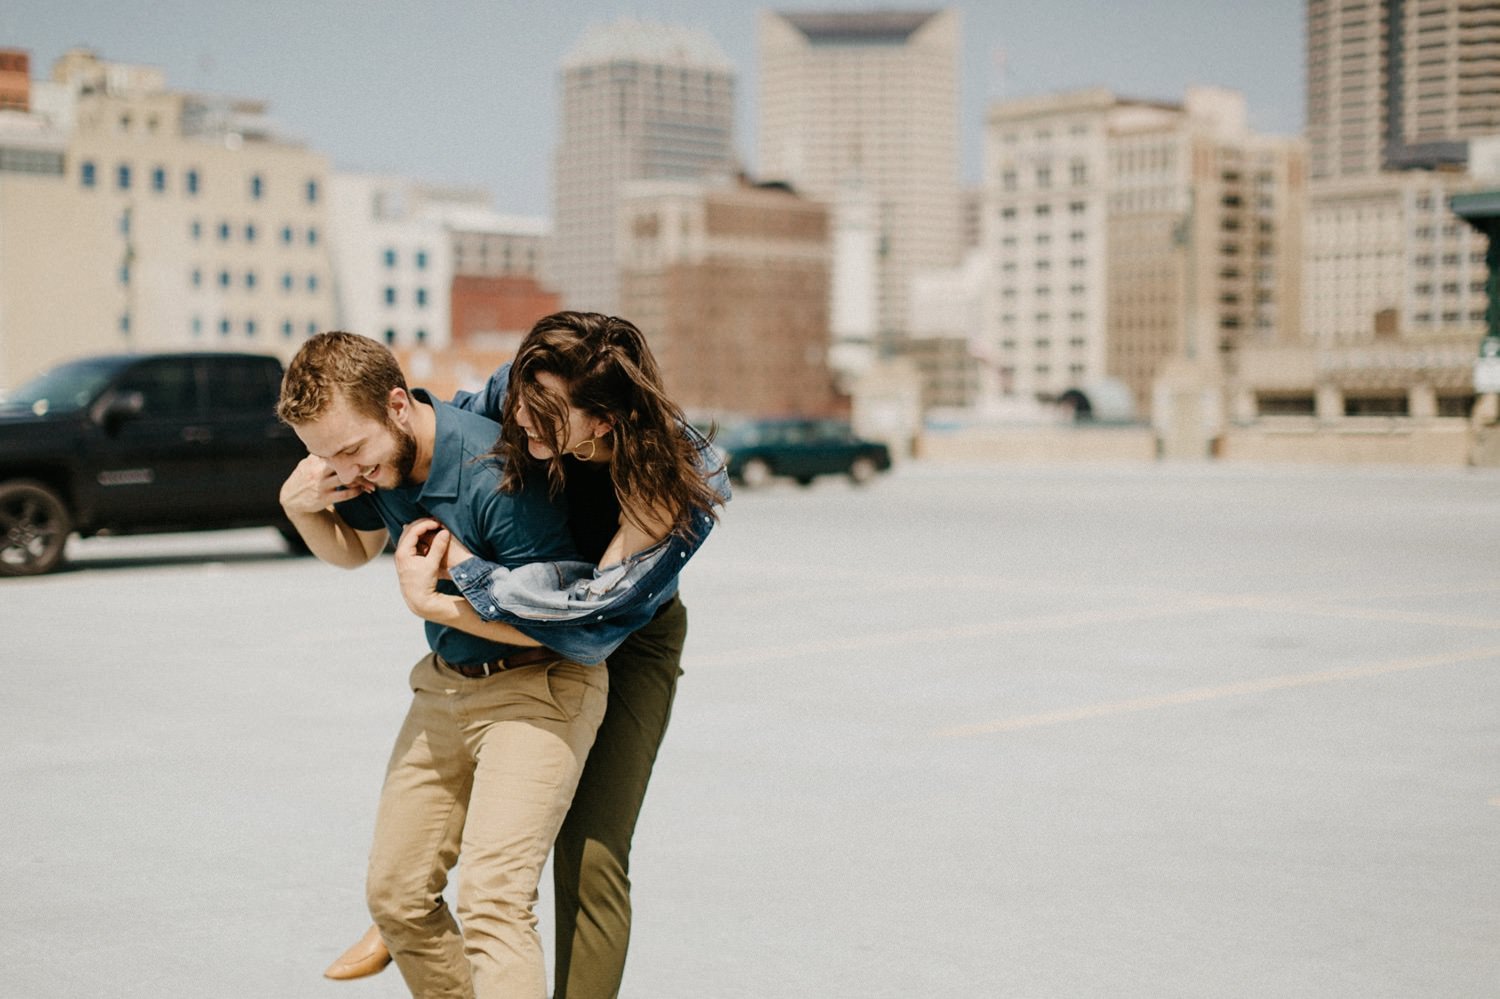 downtown-indianapolis-engagement-session-rooftop-indianapolis-engagement-photographer-kelly-marcelo-photography031.JPG